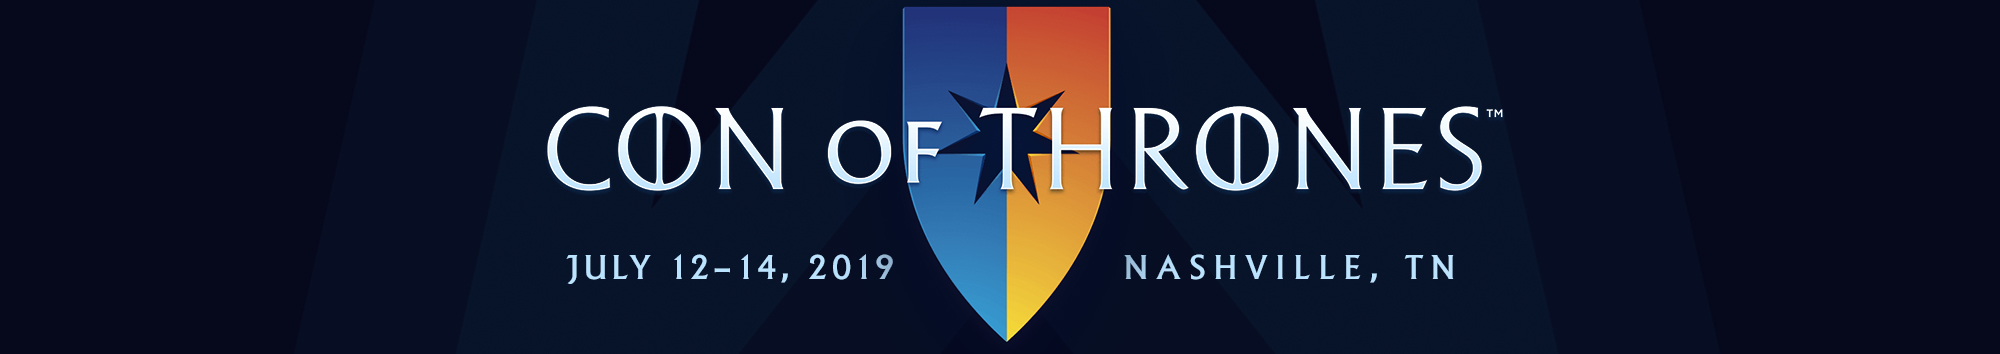 Tickets for Con of Thrones 2019 in Nashville from ShowClix